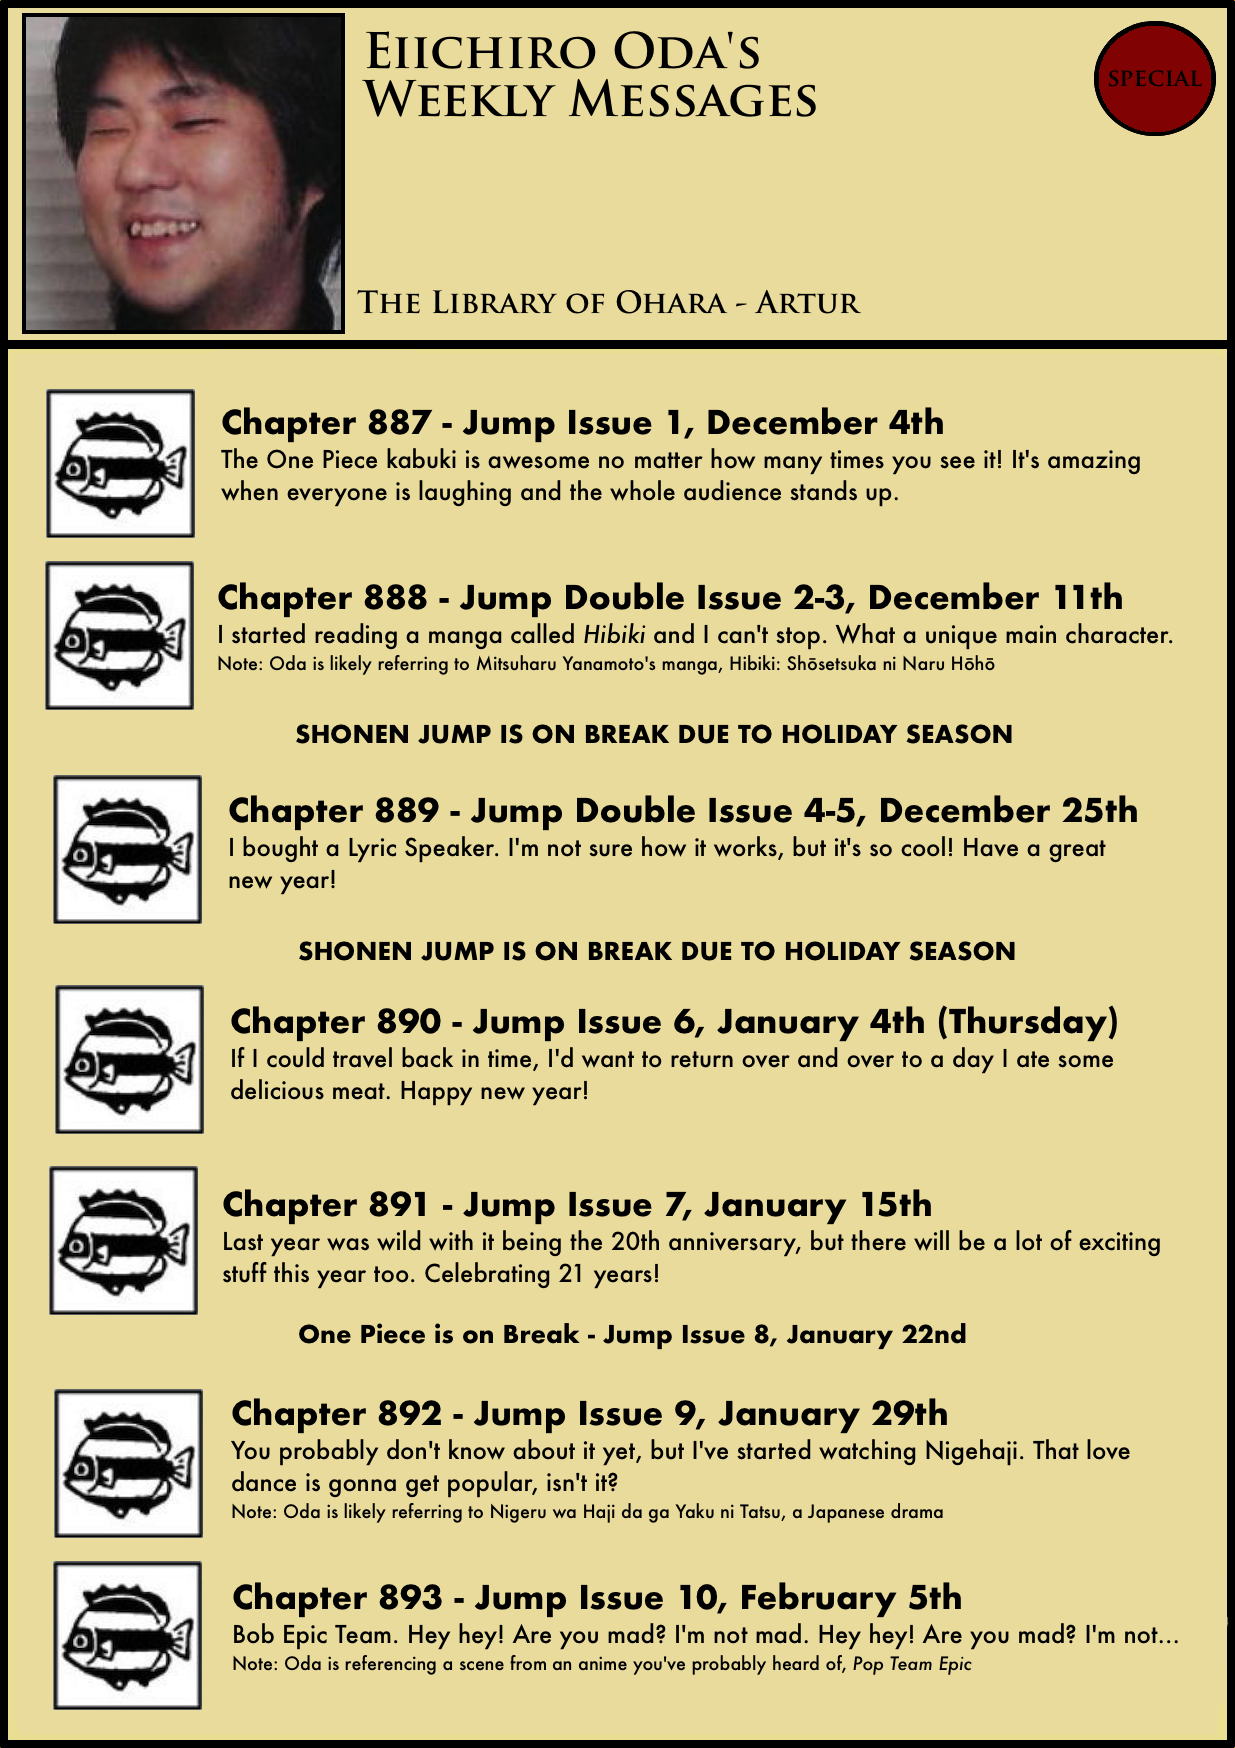 Eiichiro Oda's Weekly Messages – 2018 – The Library of Ohara